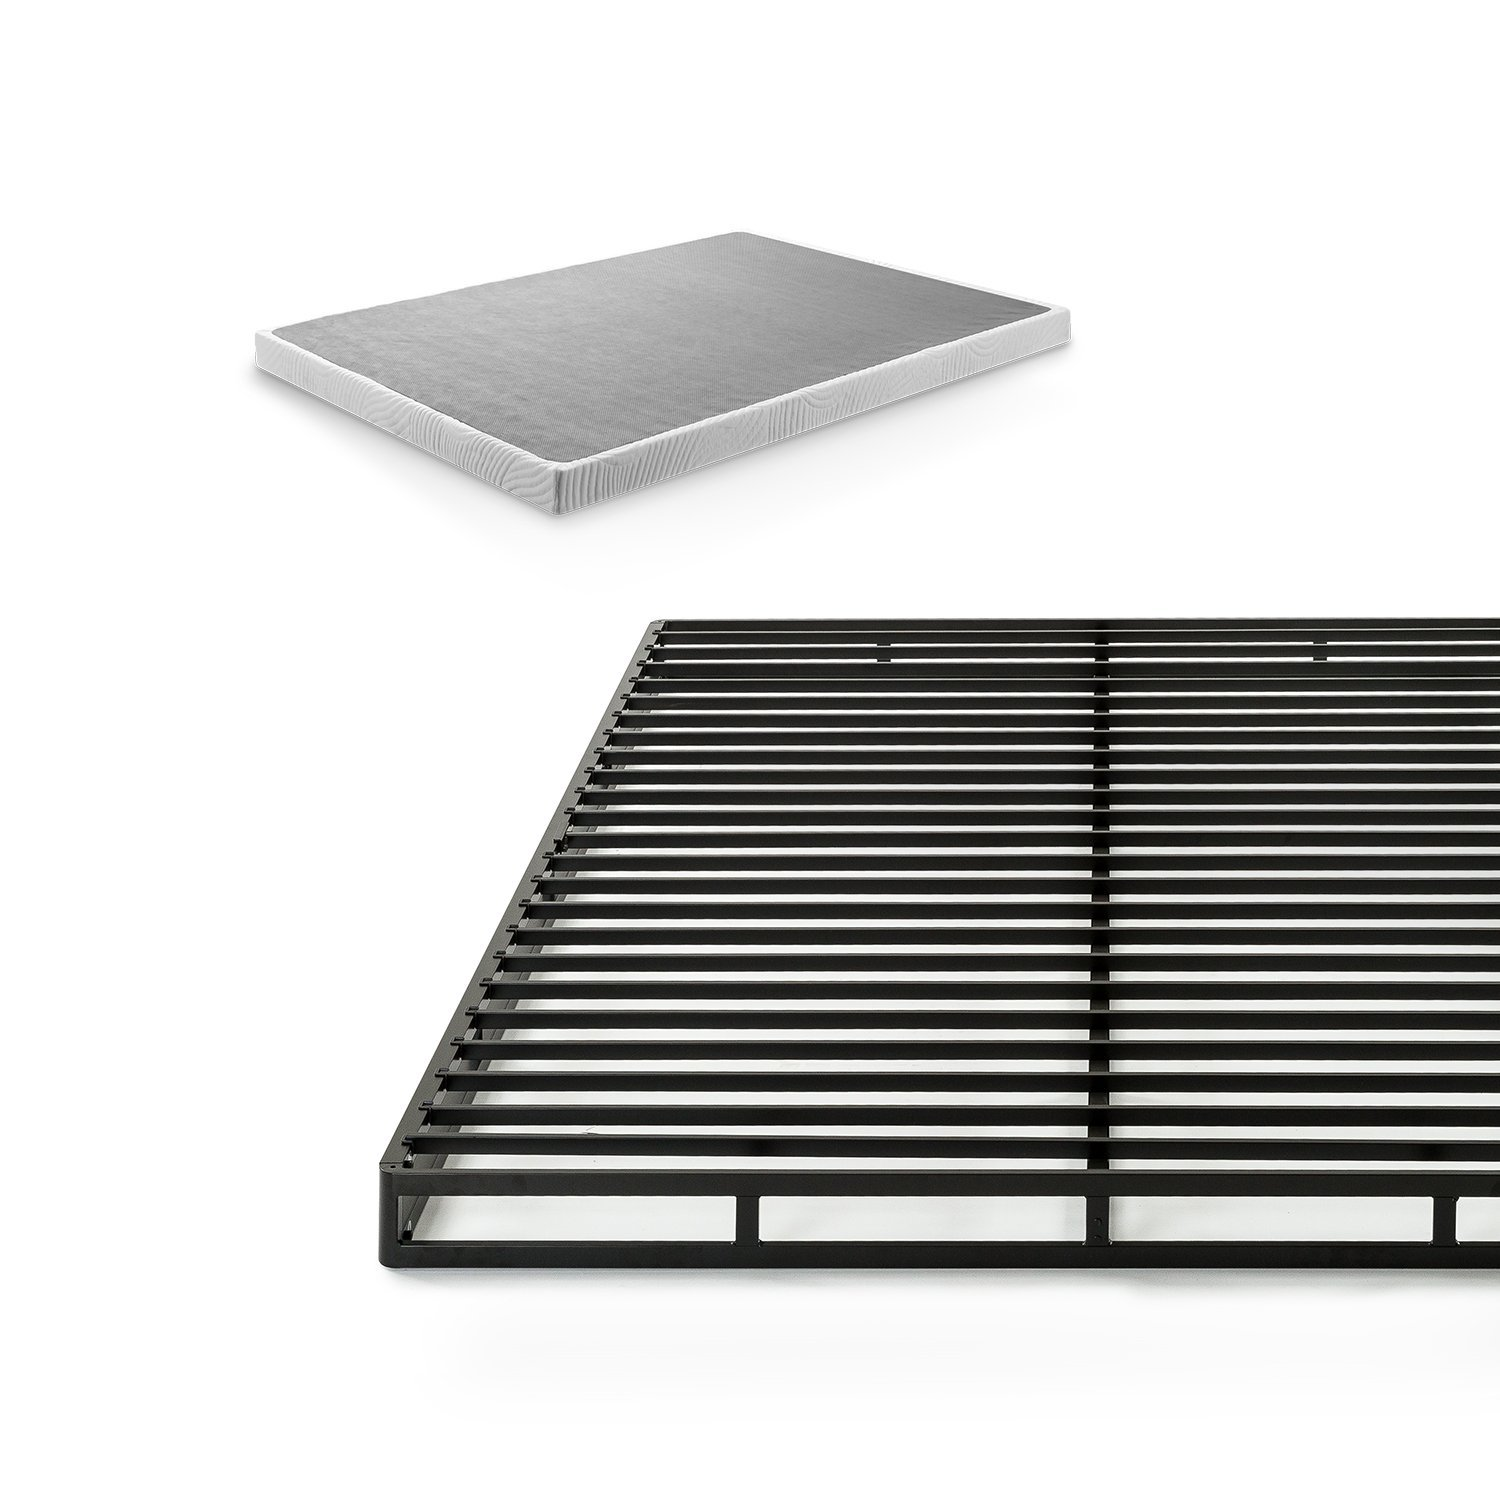 Zinus 4 Inch Low Profile Quick Lock Smart Box Spring/Mattress Foundation/Strong Steel Structure/Easy Assembly, Full